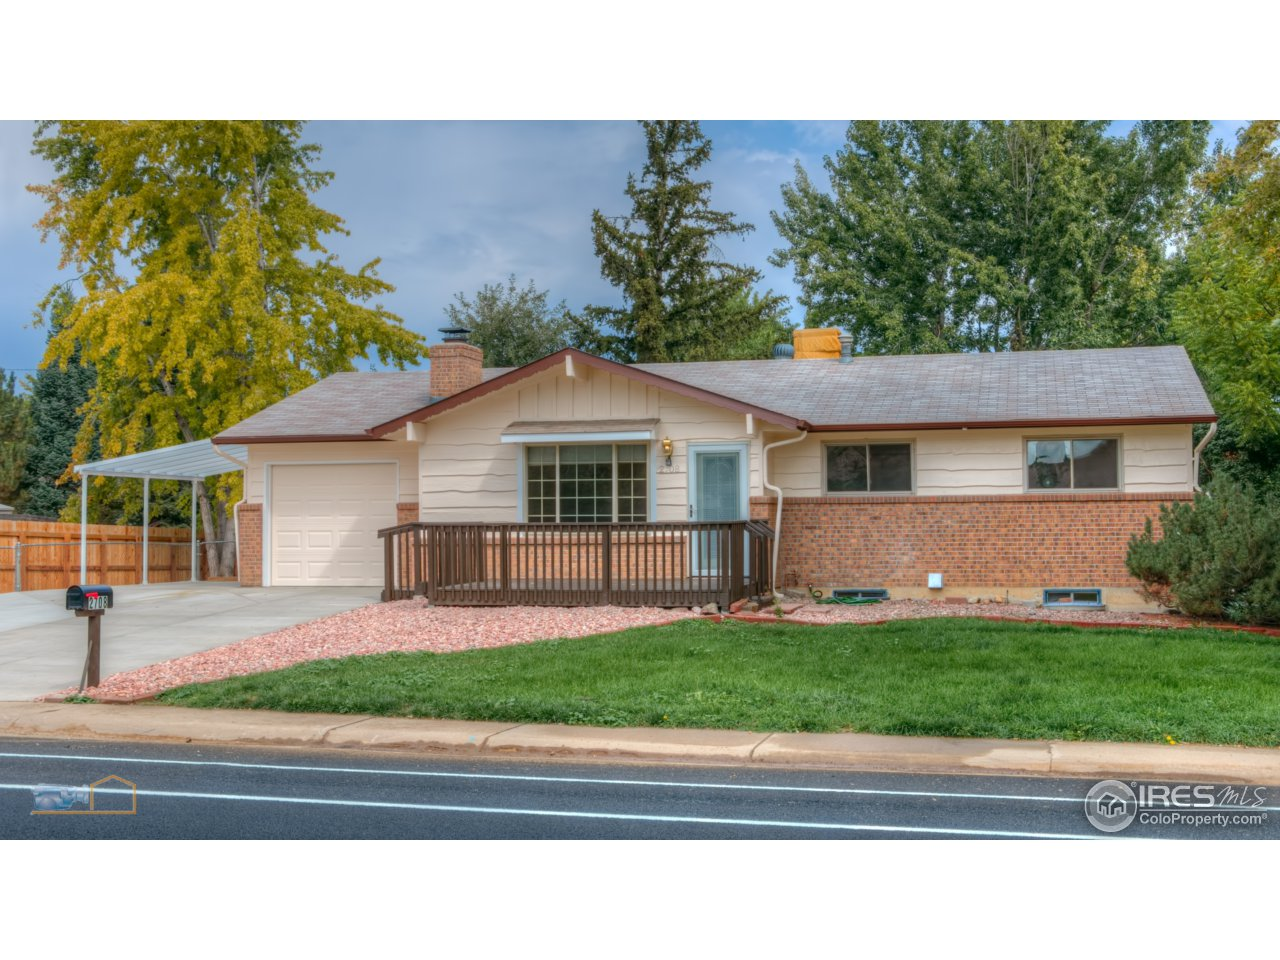 2708 Mountain View Ave, Longmont CO 80503